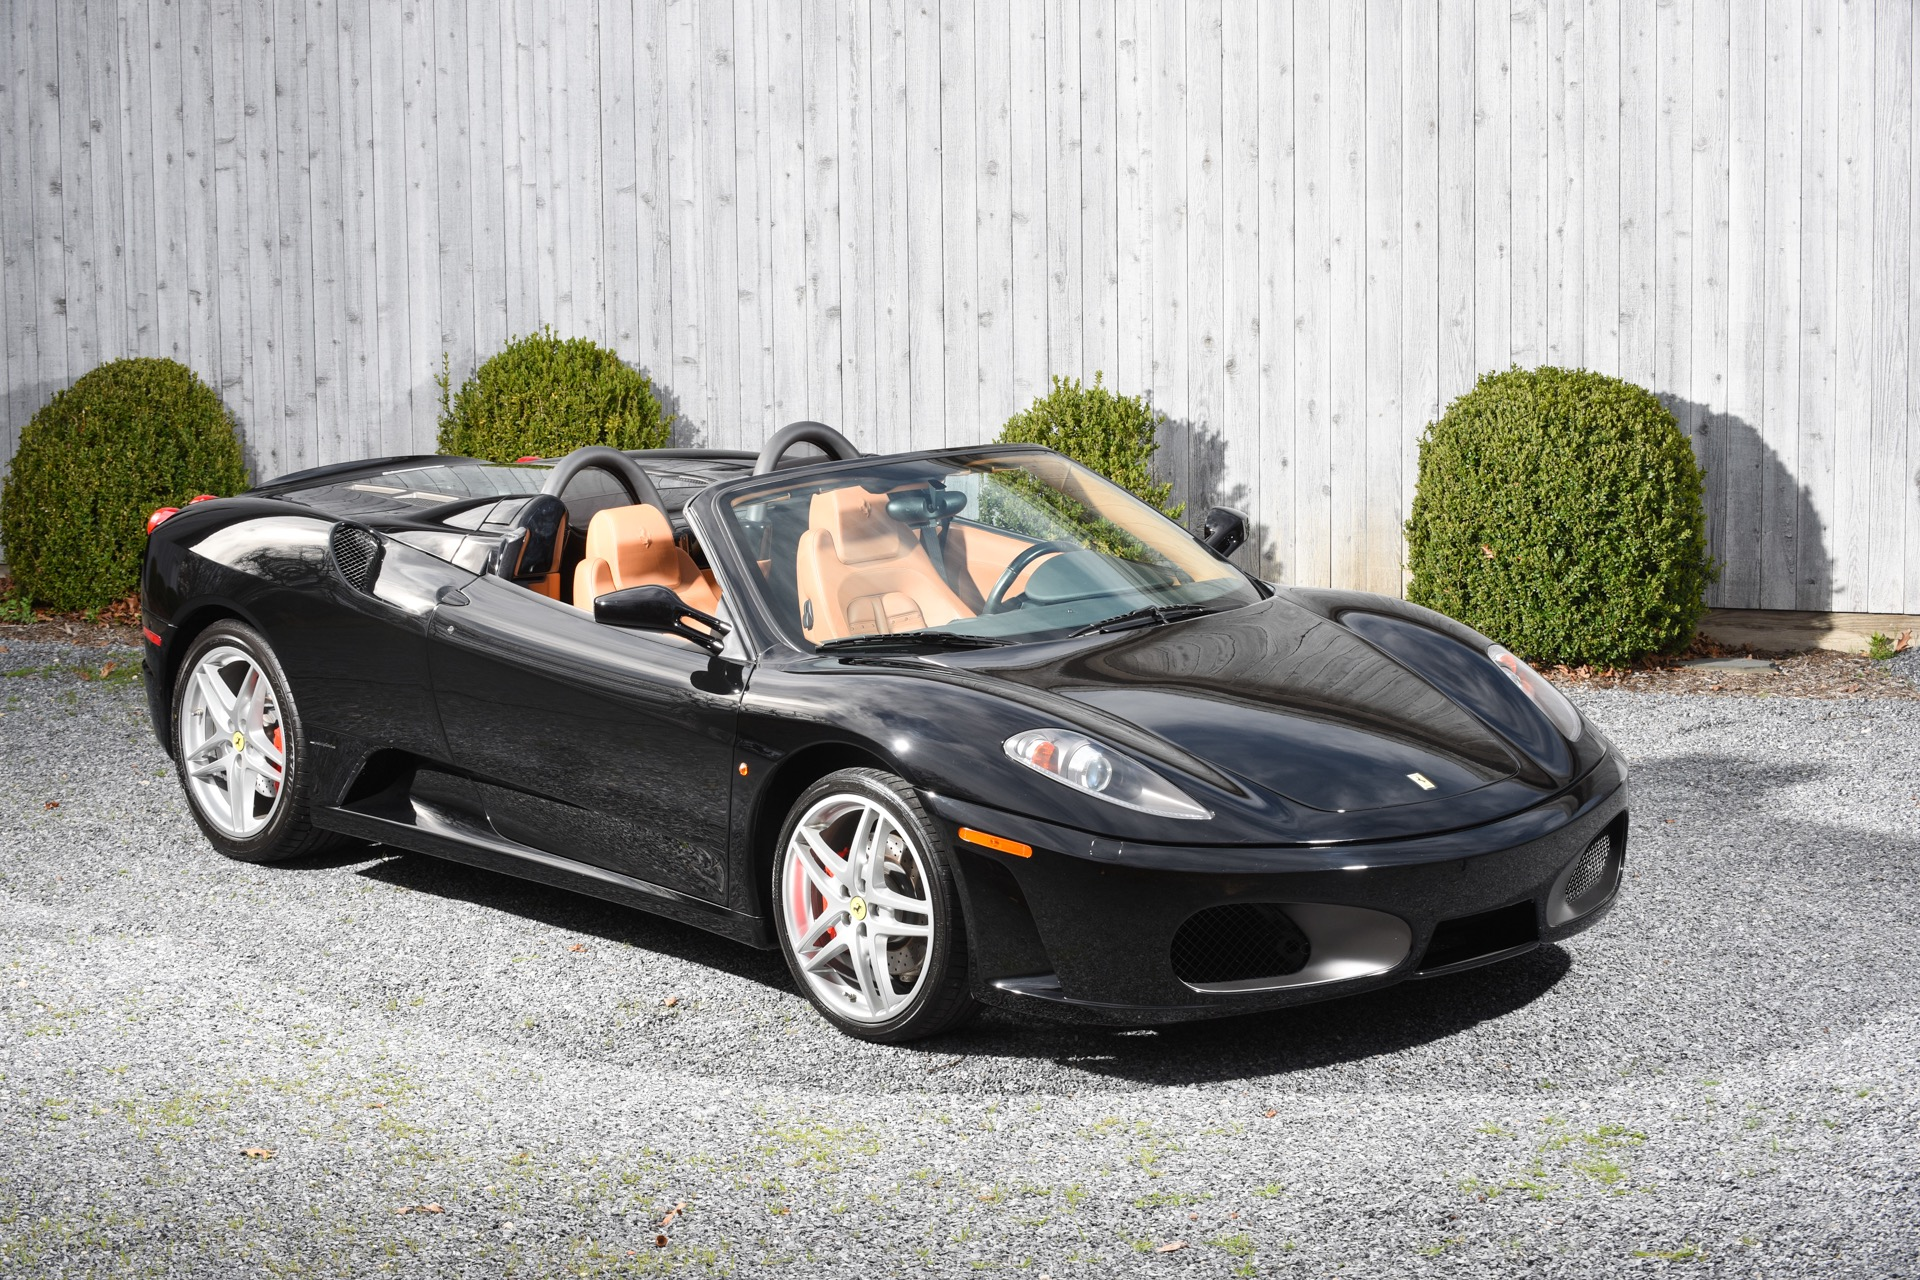 2006 ferrari f430 spider stock 11 for sale near valley. Black Bedroom Furniture Sets. Home Design Ideas